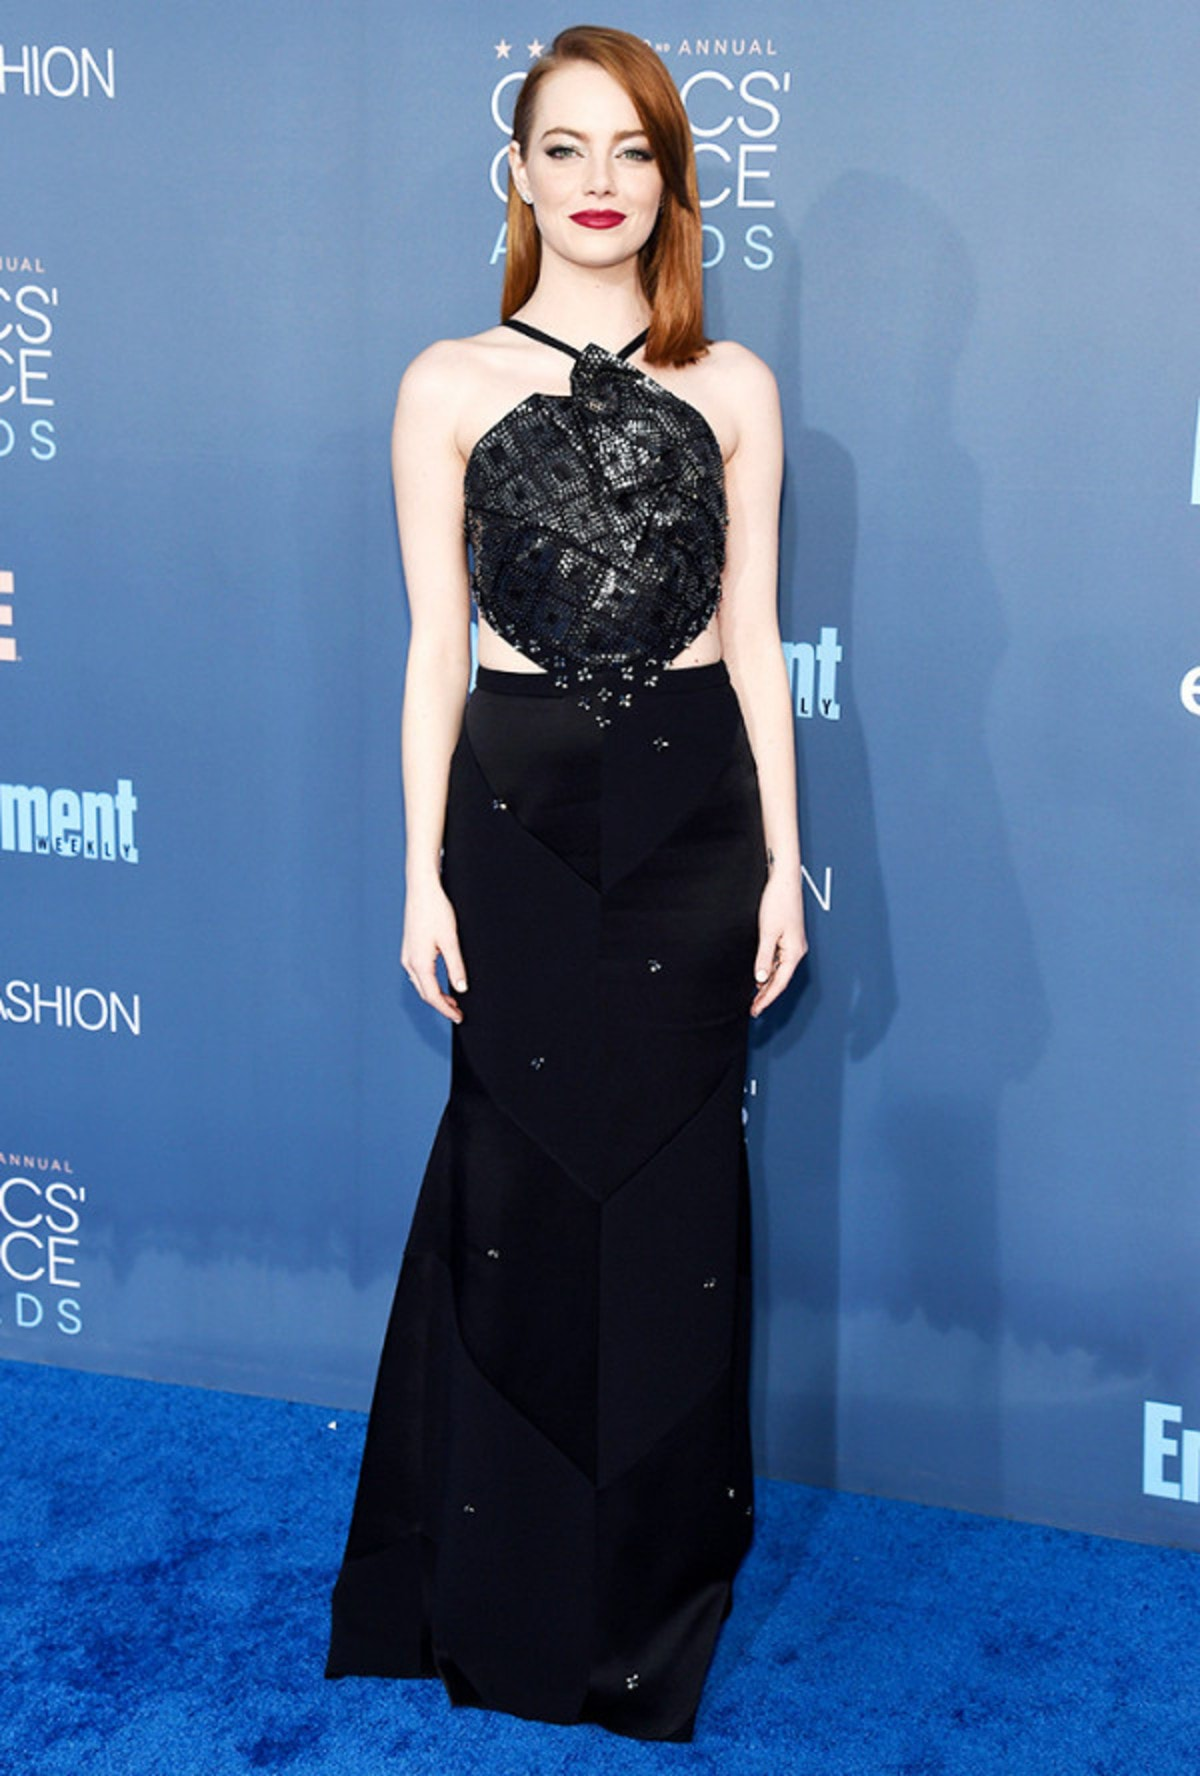 the-best-red-carpet-looks-from-the-critics-choice-awards-2075068.600x0c